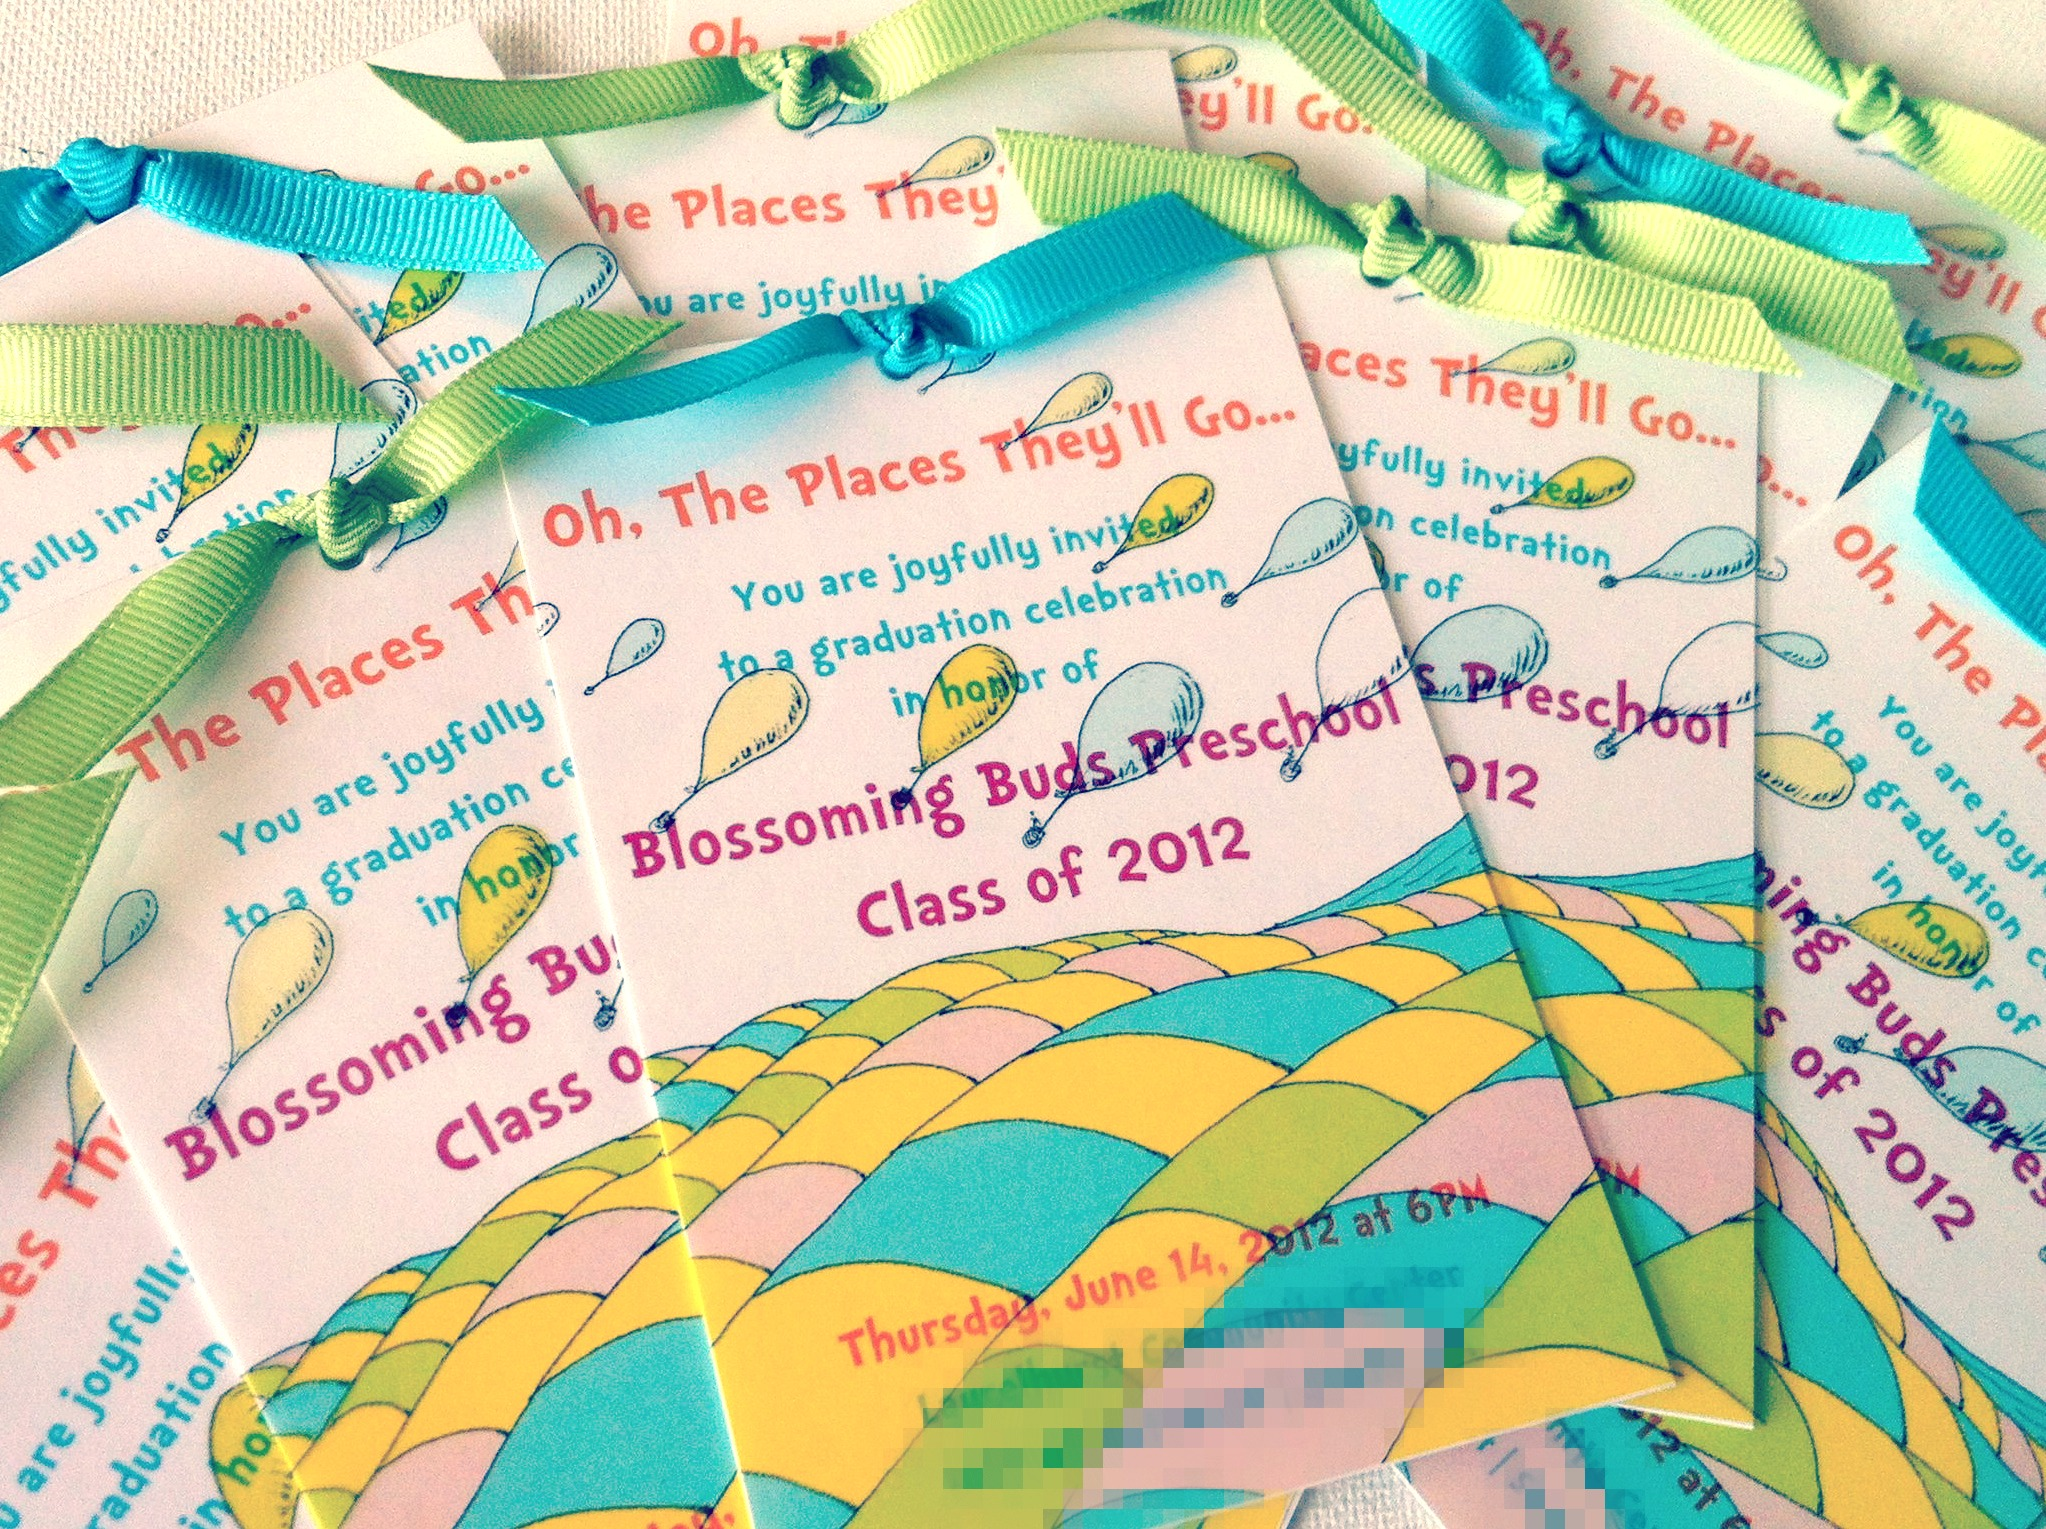 photo about Oh the Places You'll Go Balloon Printable Template referred to as Oh, The Sites Youll Move: Do it yourself Balloon Invites - The